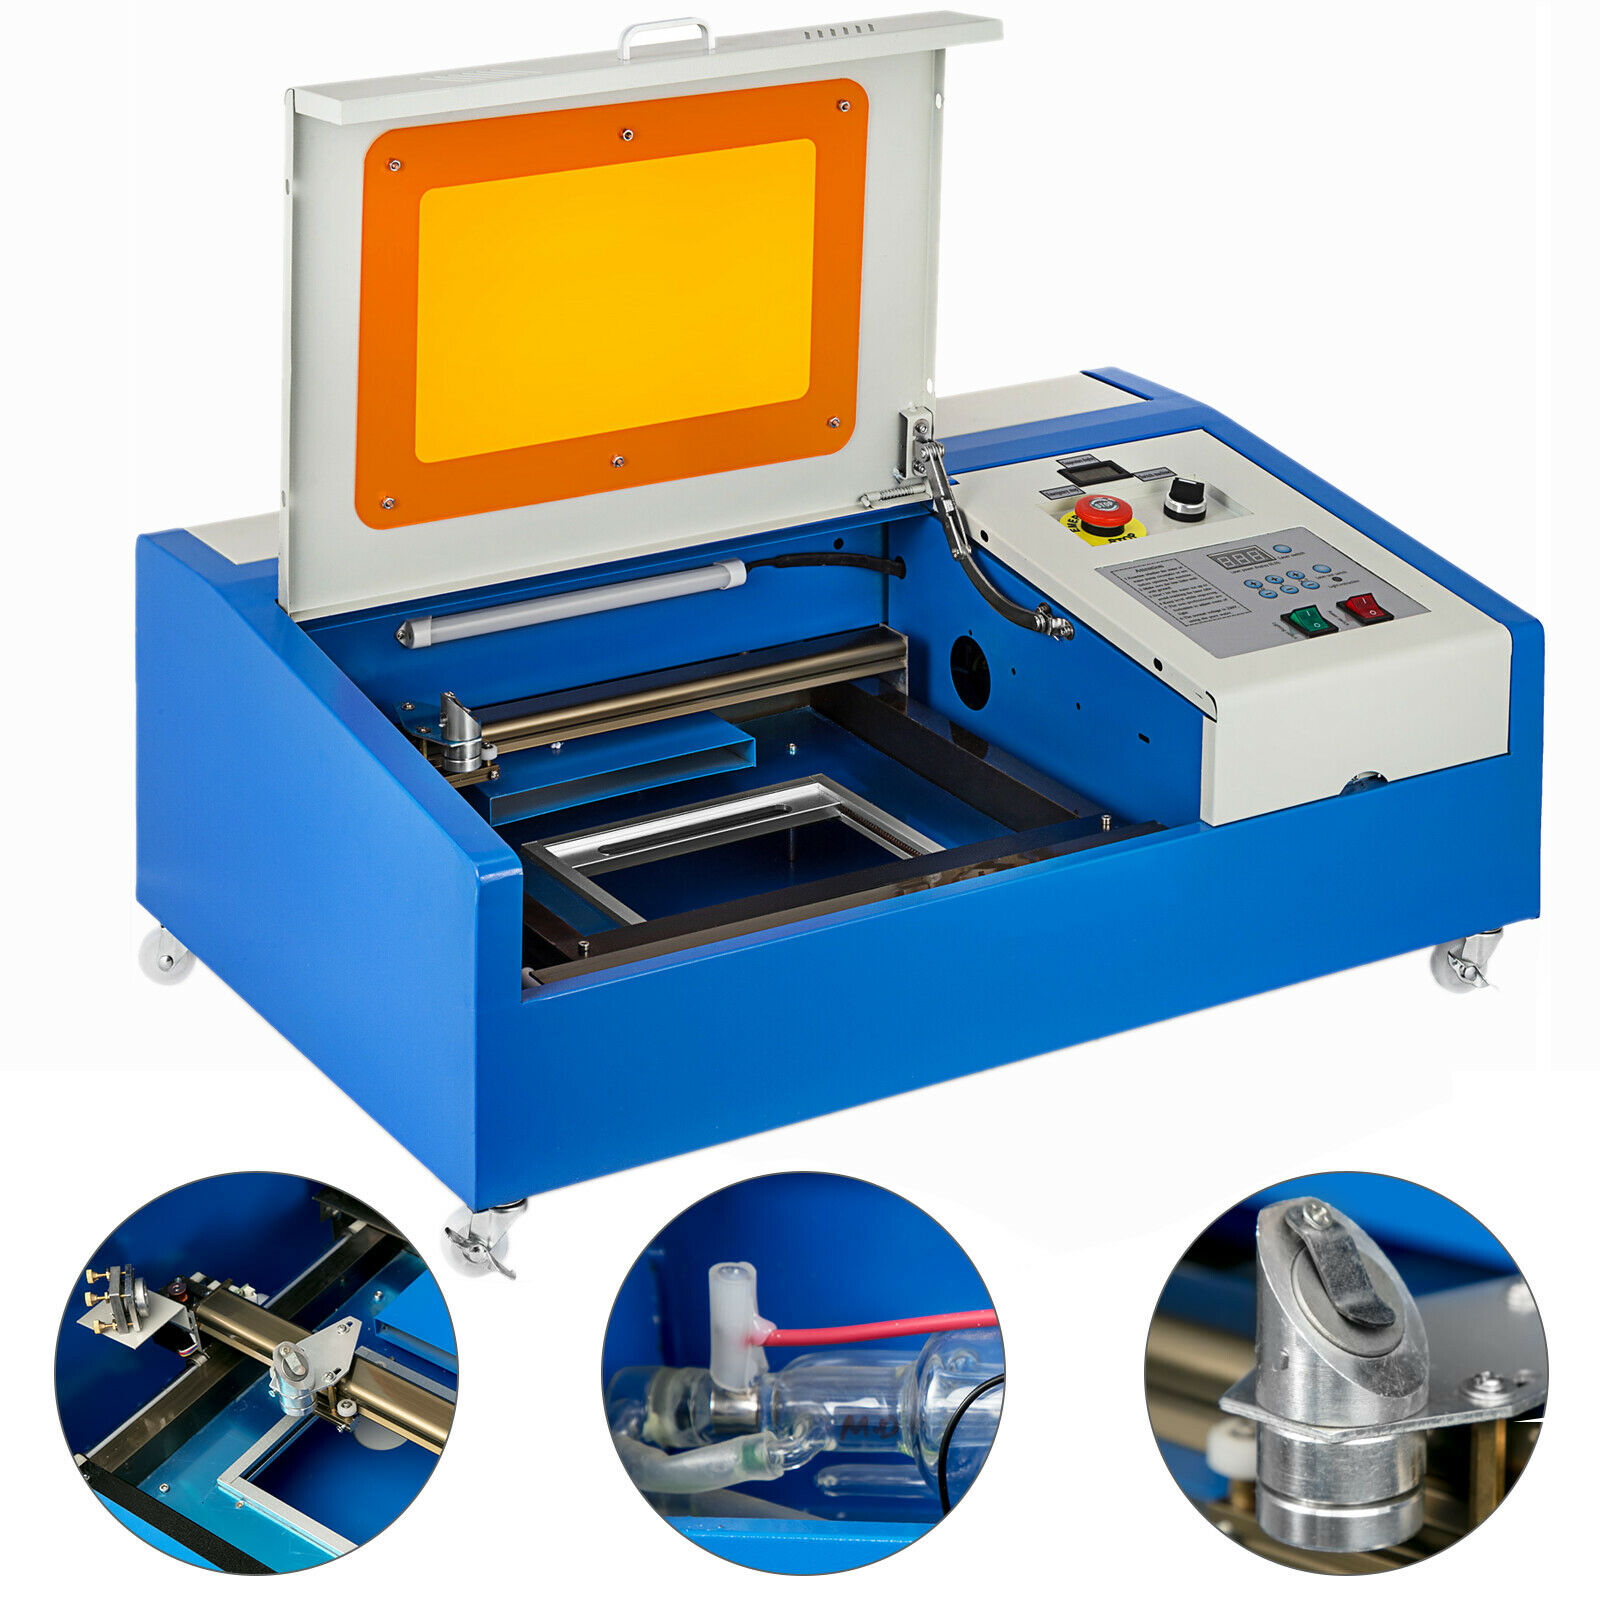 EU Warehouse 40W CO2 Laser Engraver Cutting Engraving Machine USB Port 300x200mm